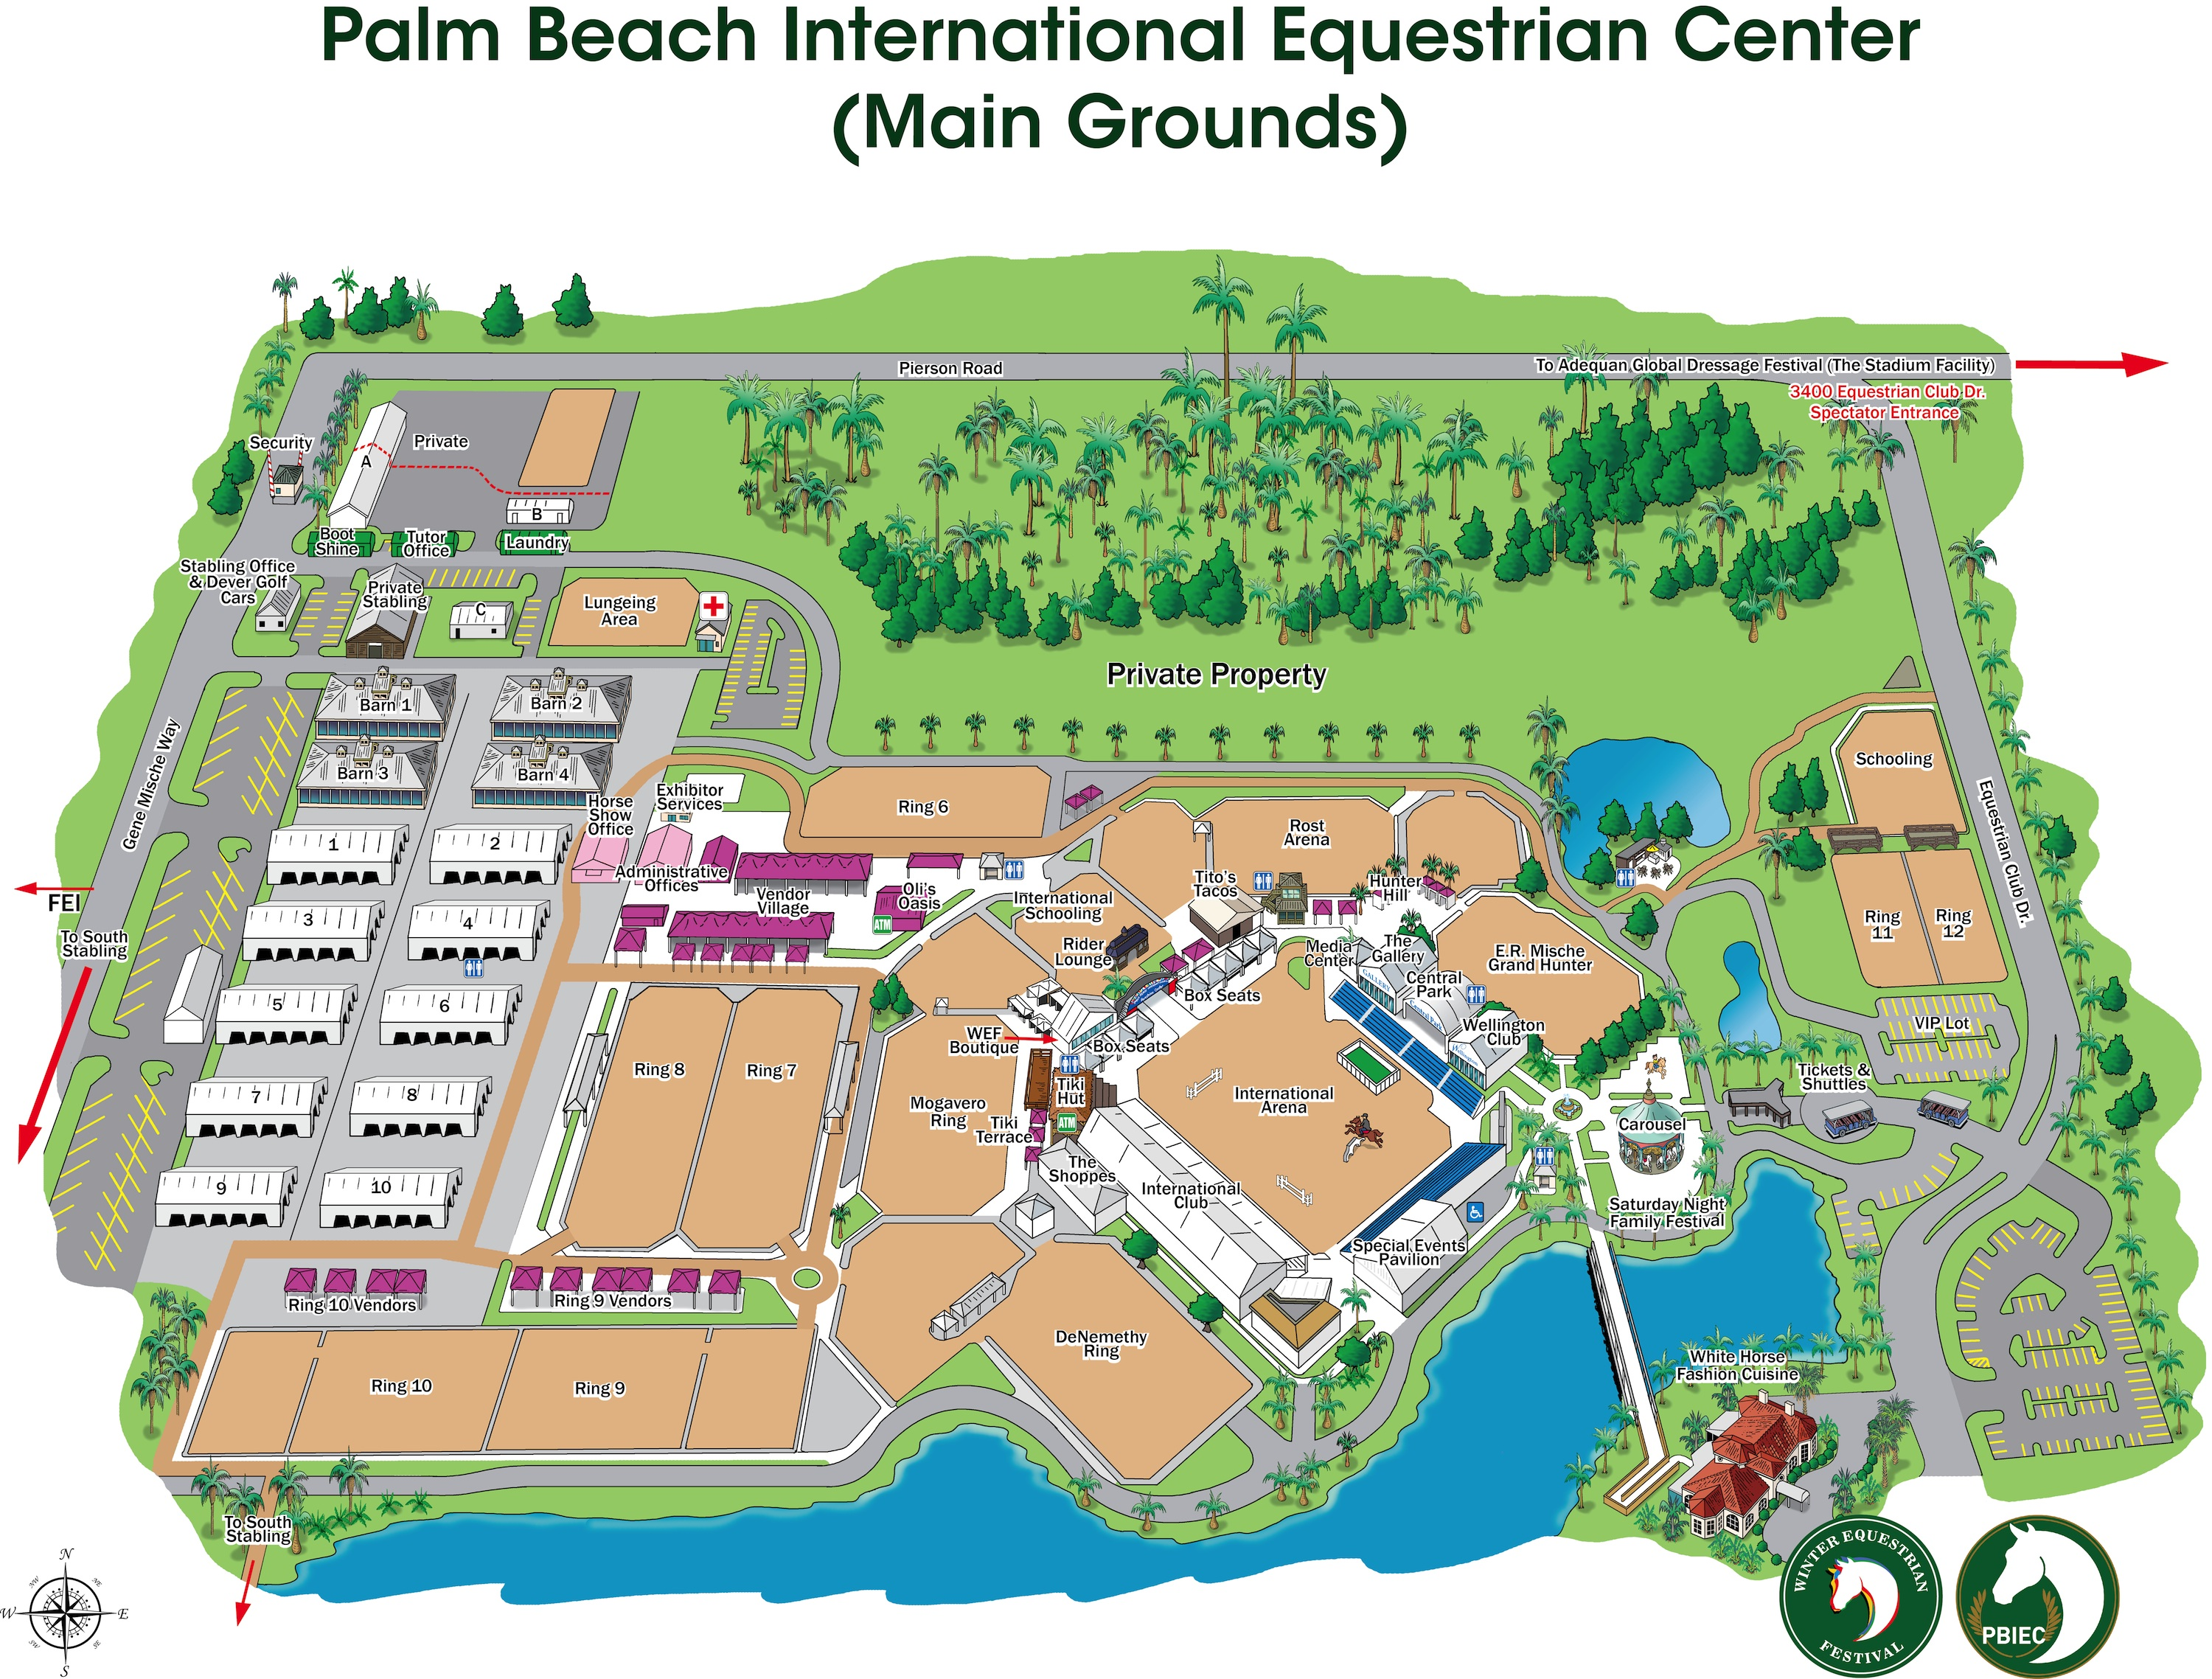 Pointer Spot Tool For Maps: Equestrian Sport Productions